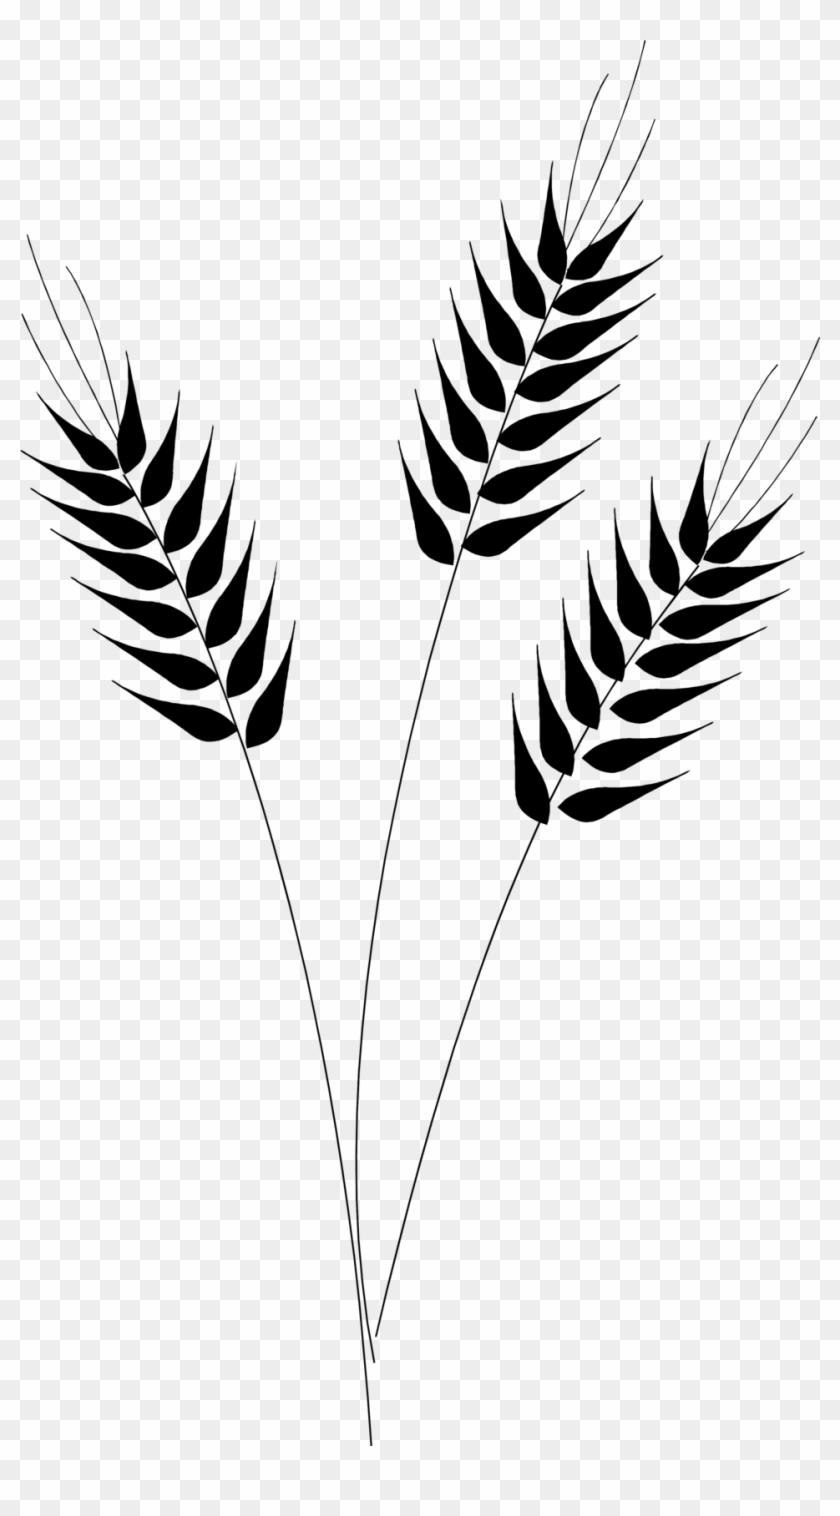 Grain Clipart Wheat Silhouette - Wheat Clipart Transparent Background - Png Download #200251